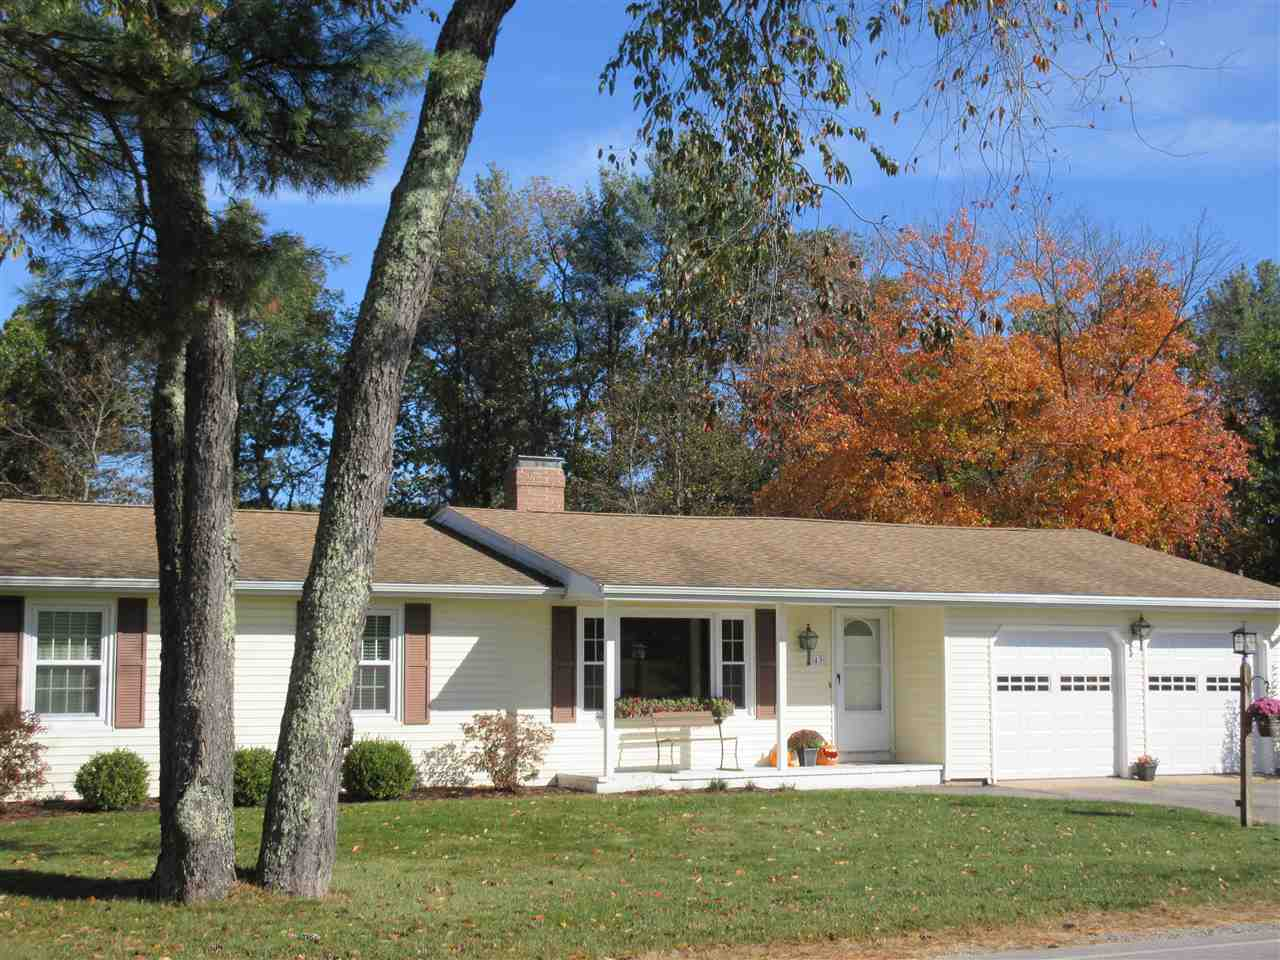 residential homes and real estate for sale in north hampton nh by